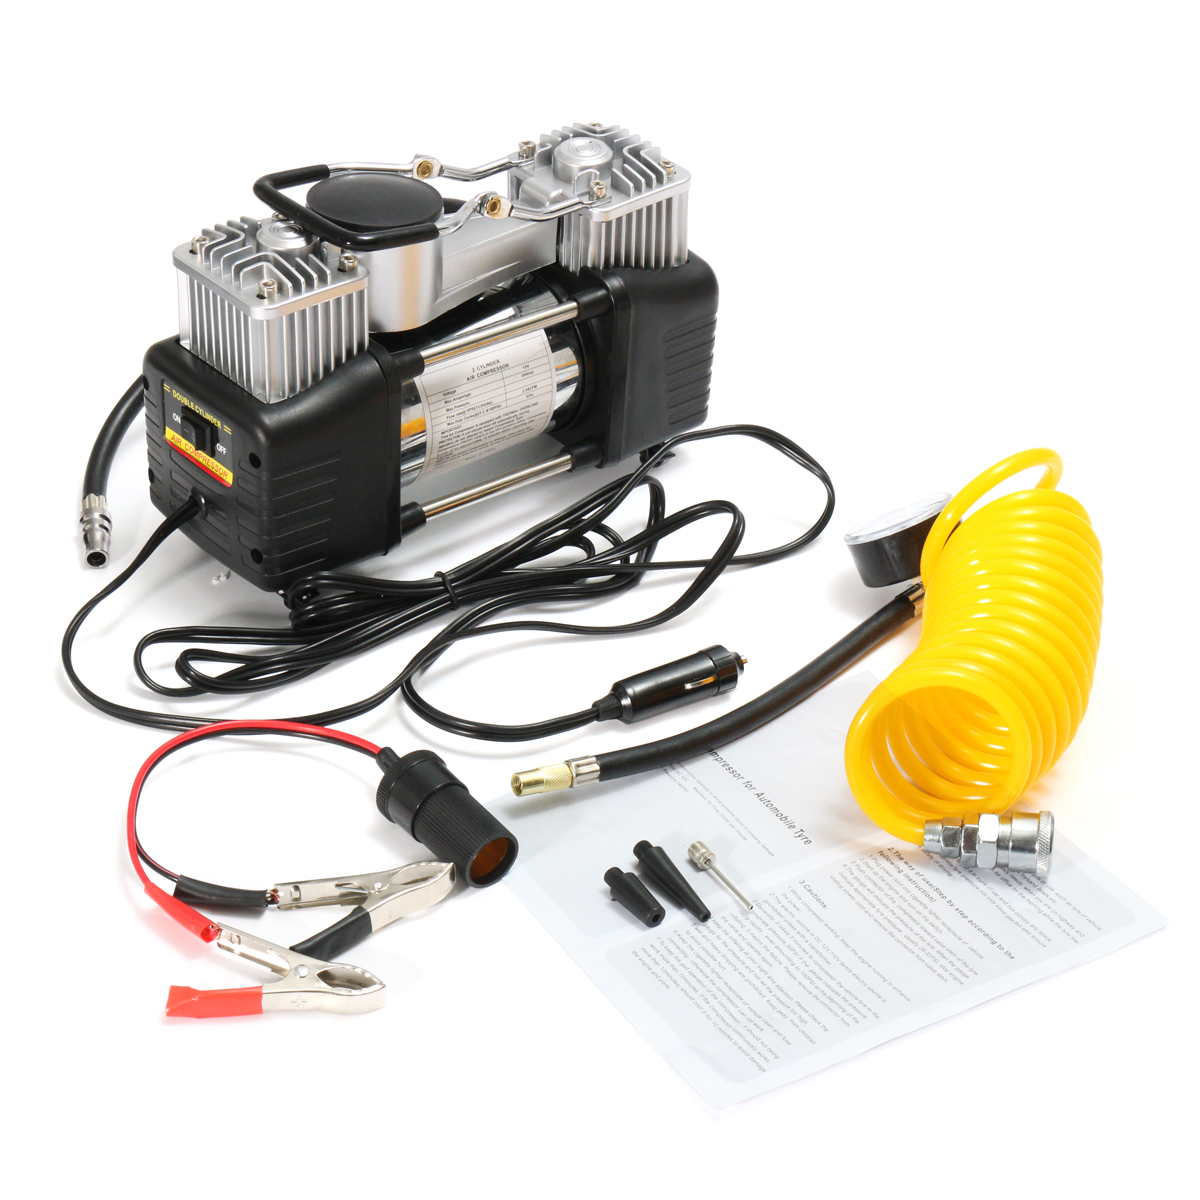 Mohoo 12V 150PSI Double Cylinder Car Air Compressor Pump Car Tyre Inflator Pressure Pump Portable Kit